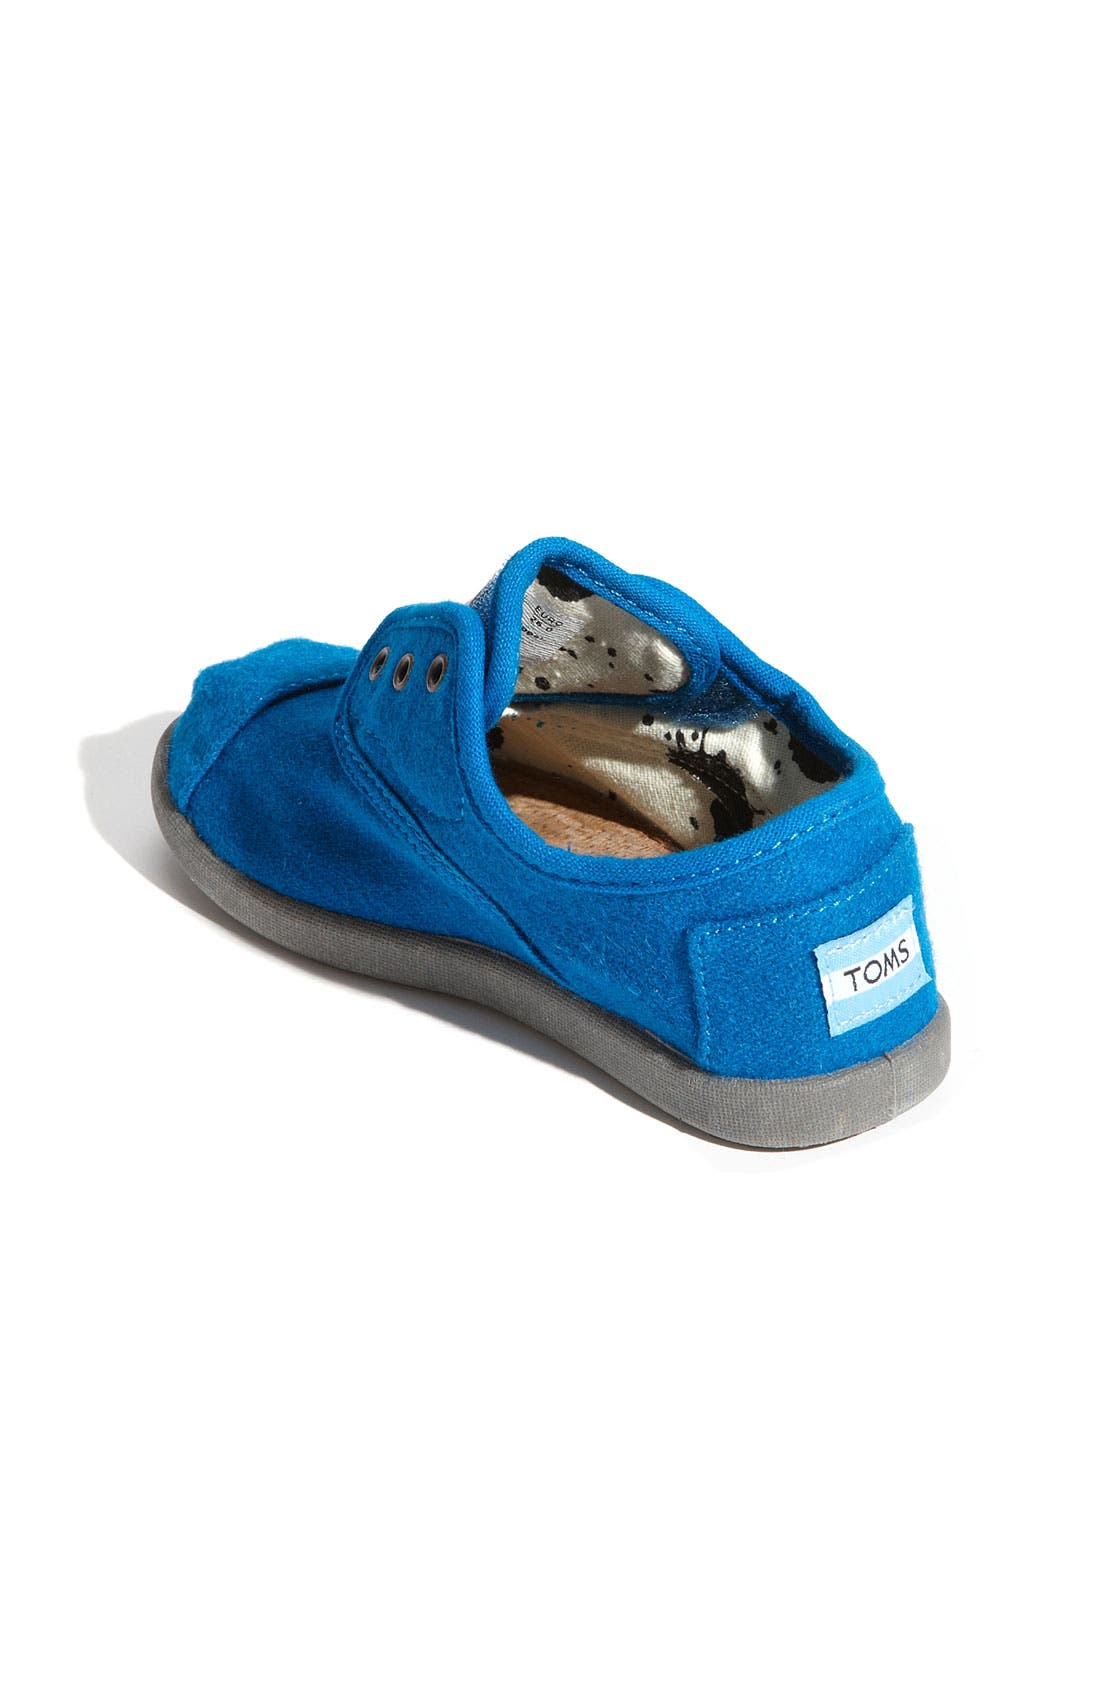 Alternate Image 2  - TOMS 'Cordones - Tiny' Woolen Slip-On Sneaker (Baby, Walker & Toddler)